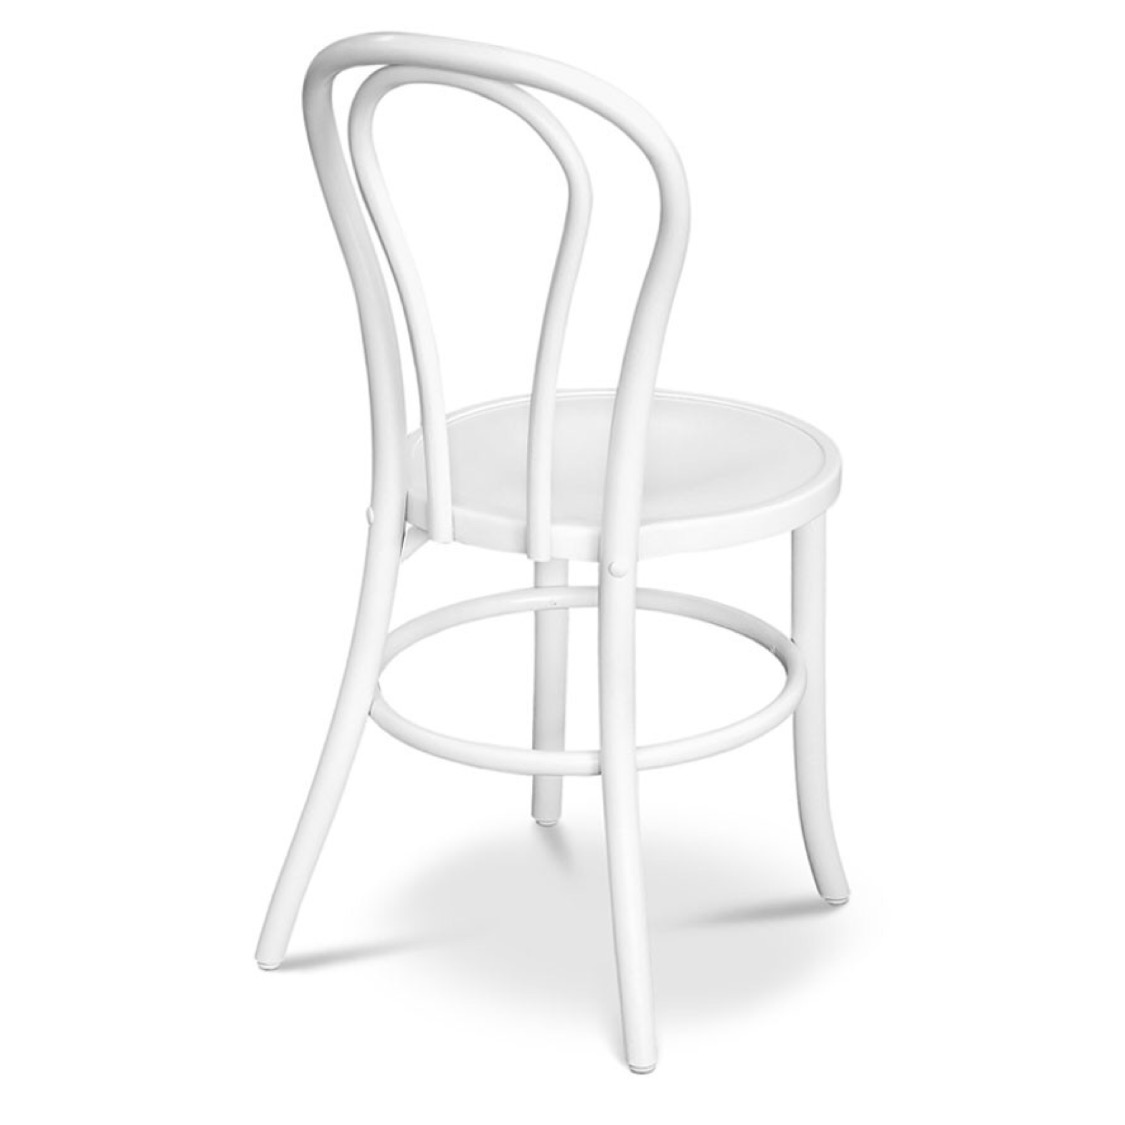 White-Bentwood-Chair-Hire-Perth.jpg